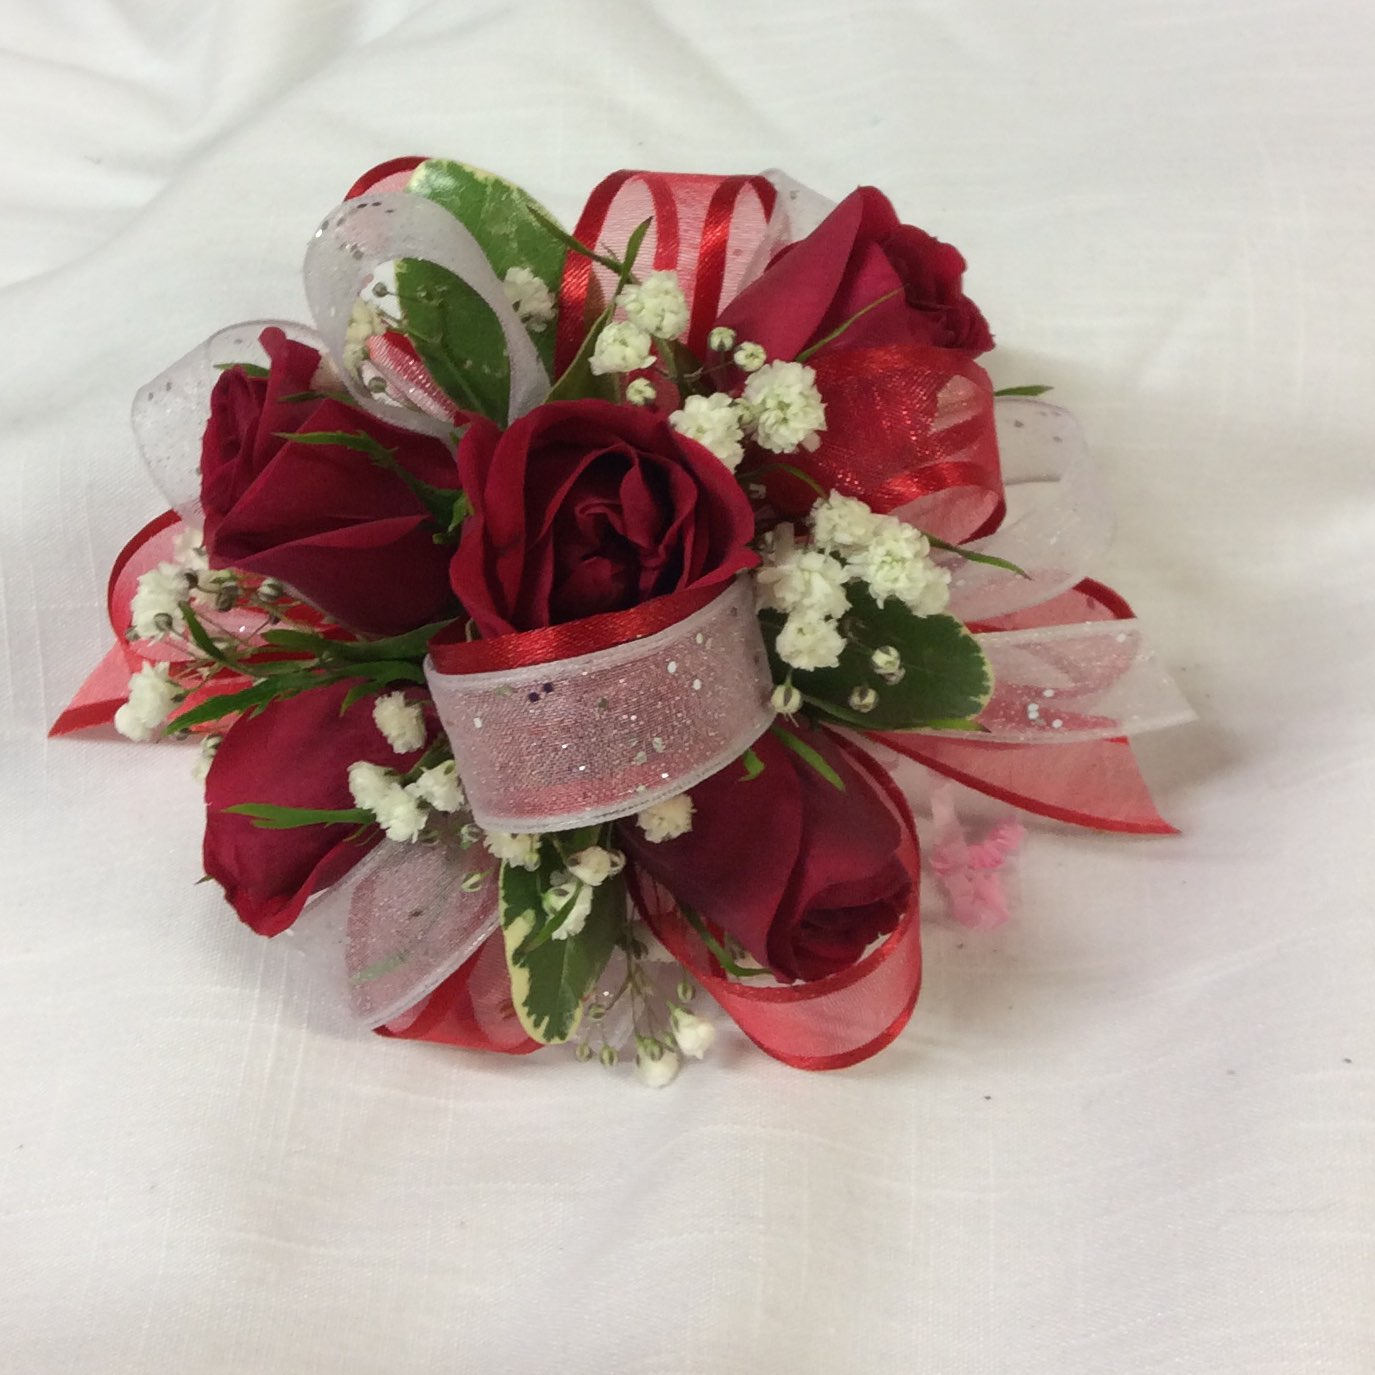 Pin by Fred's Flowers & Gifts on Our Flower Designs